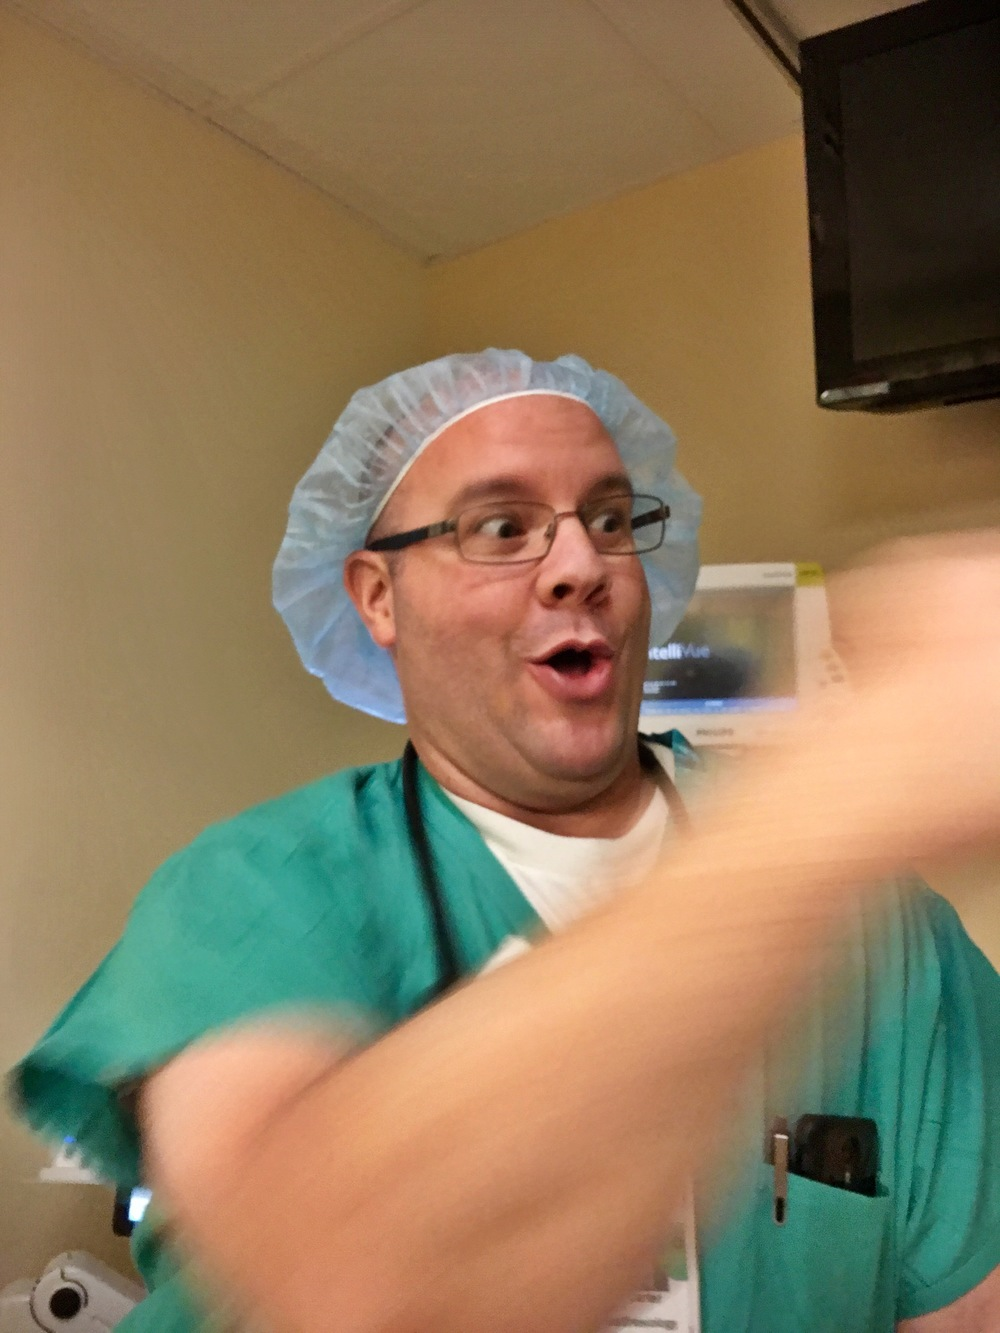 Dr Carter, anesthesiologist and funny guy passes gas...